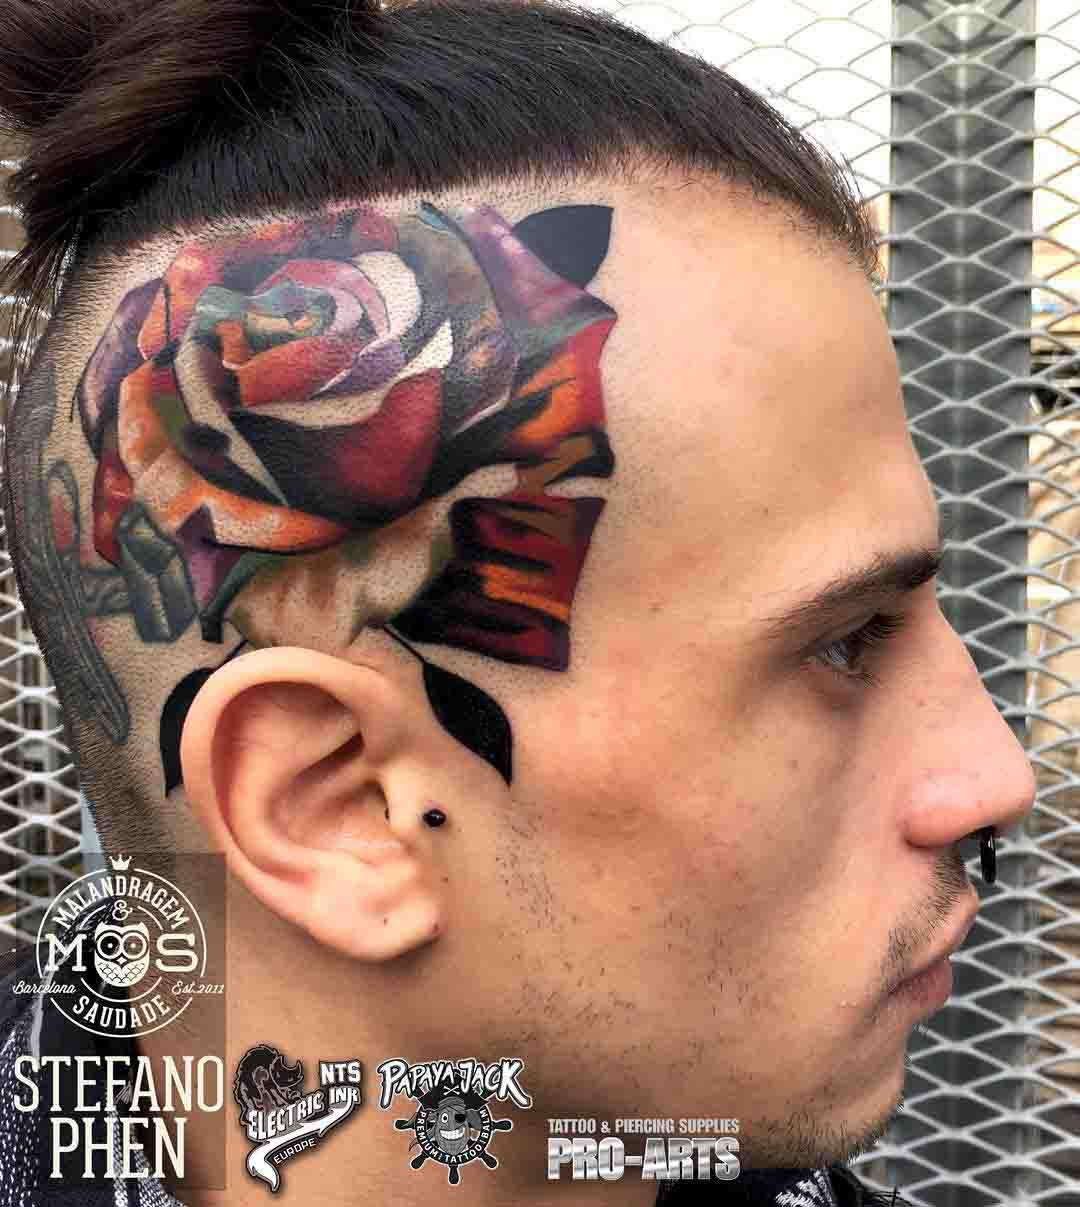 rose tattoo on the side of the head